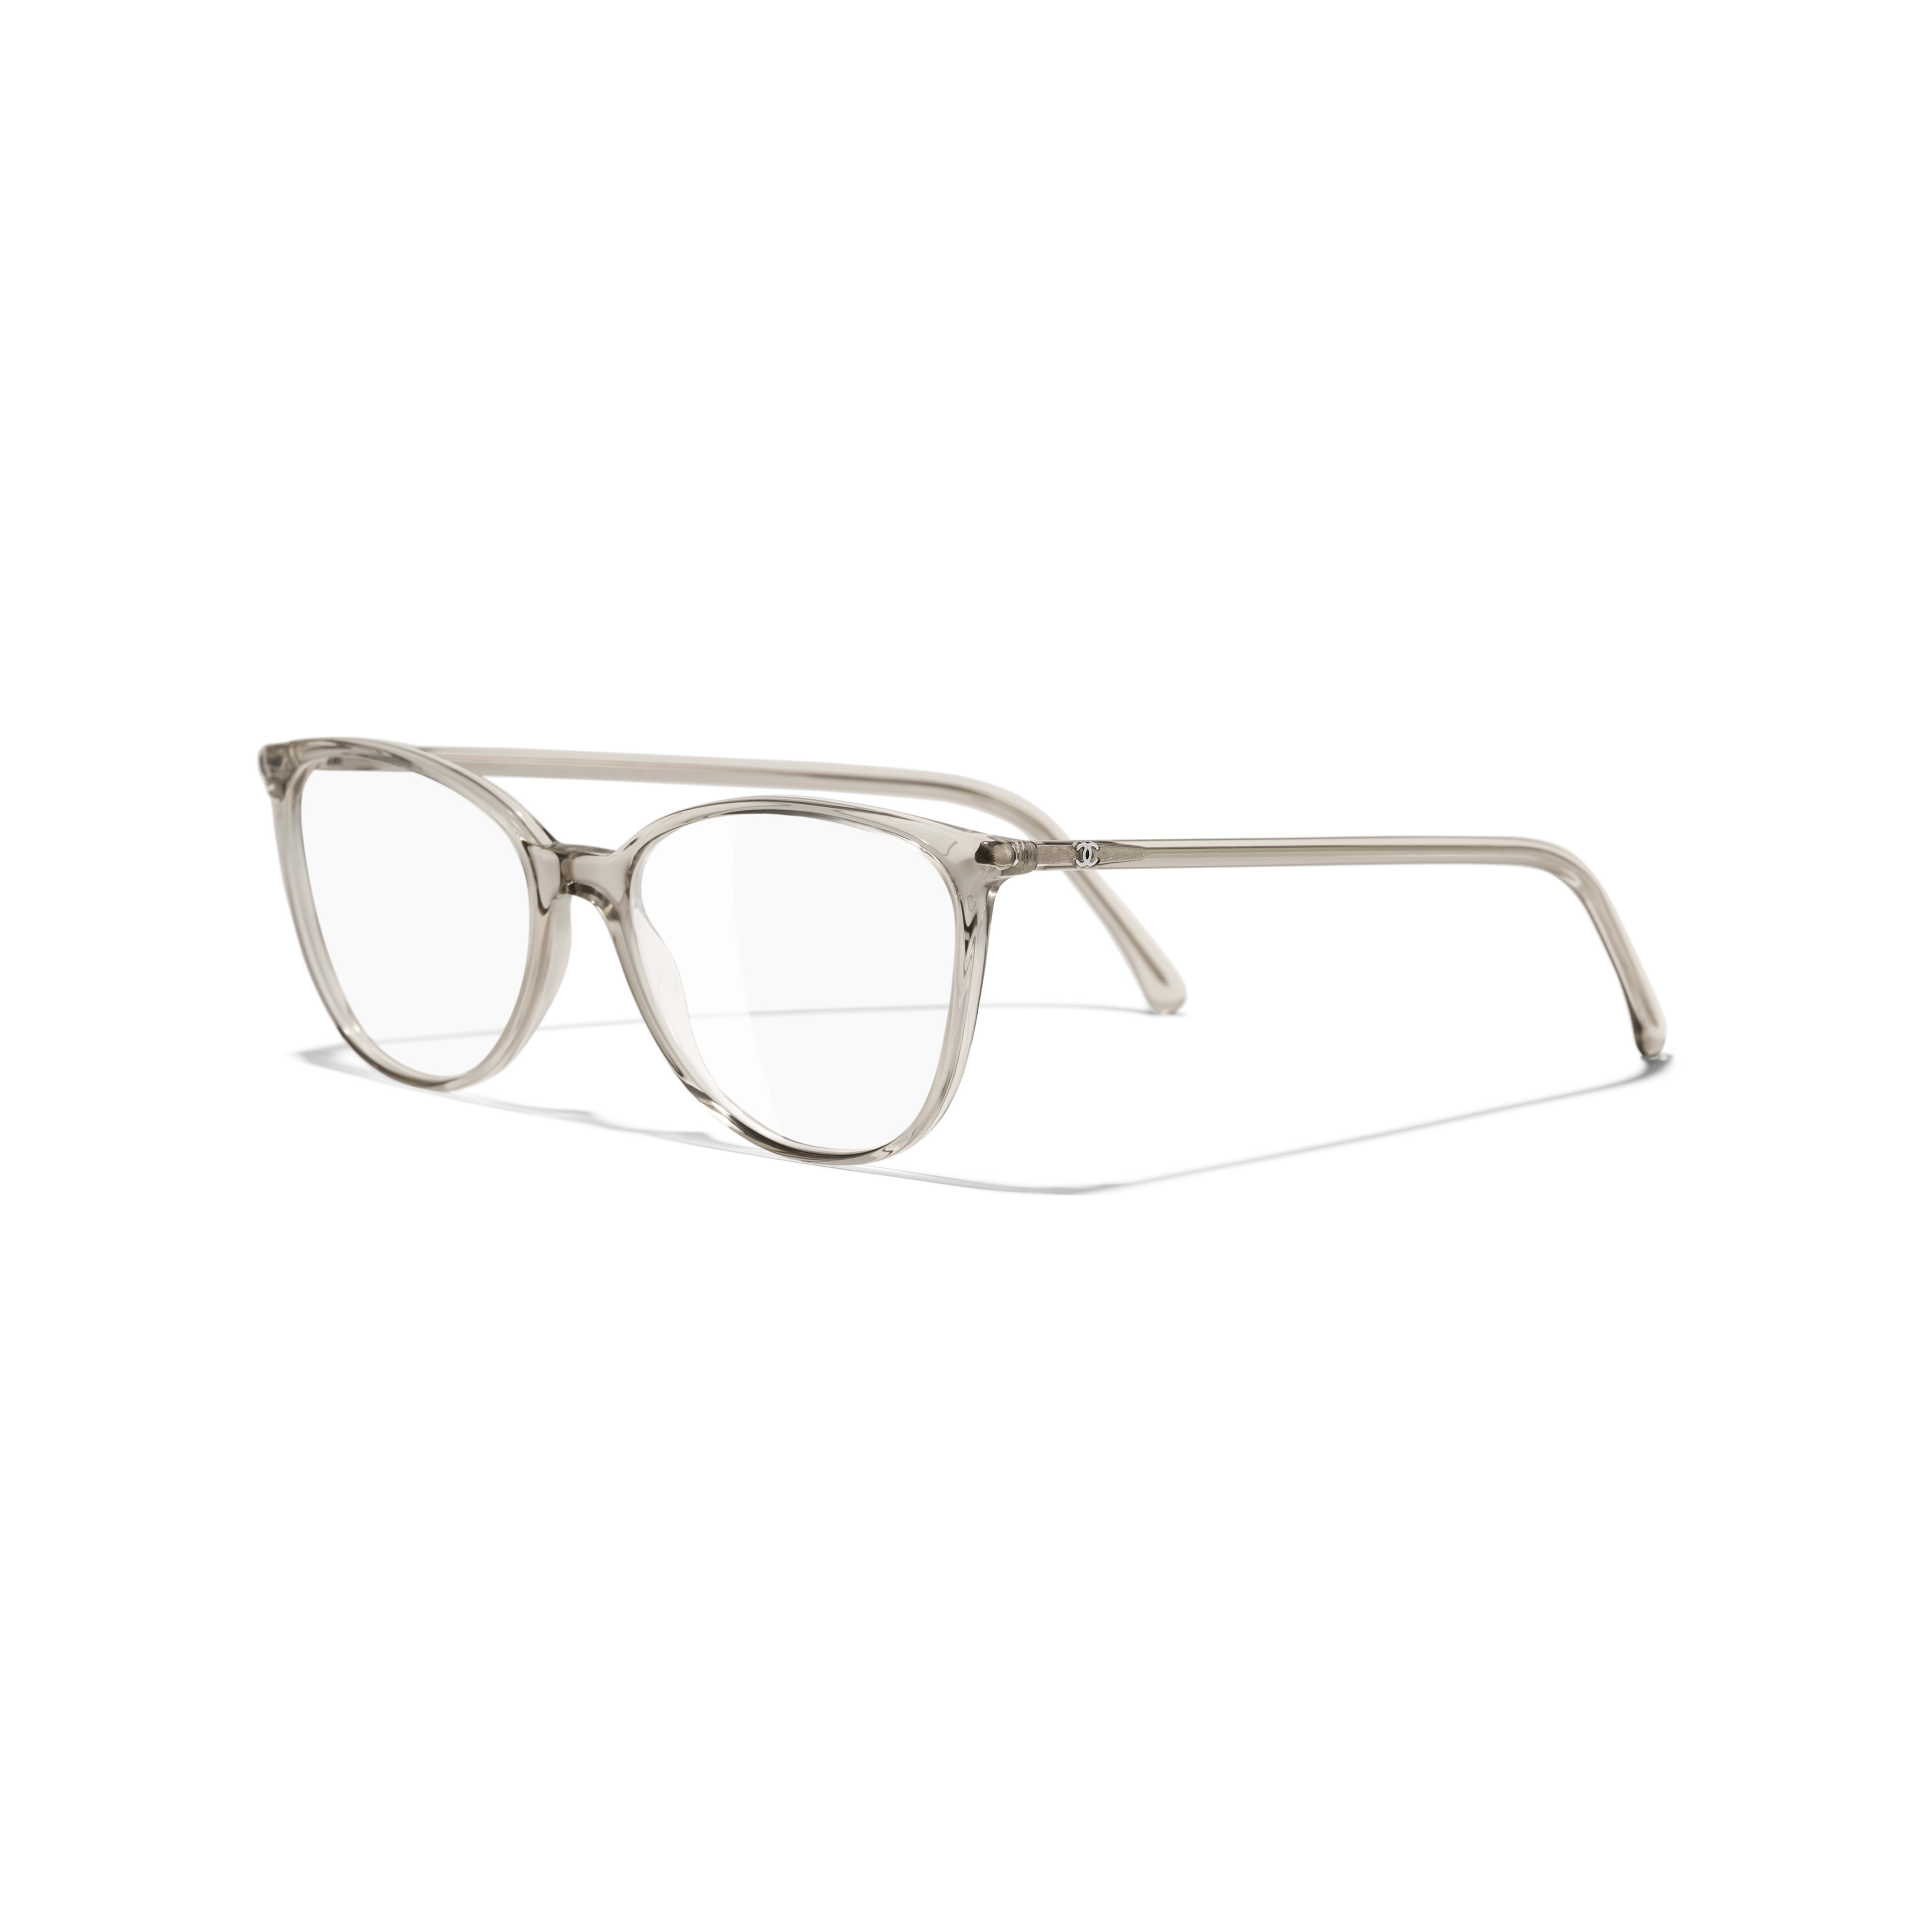 Square Eyeglasses - Transparent Beige - Acetate - Extra view - see full sized version